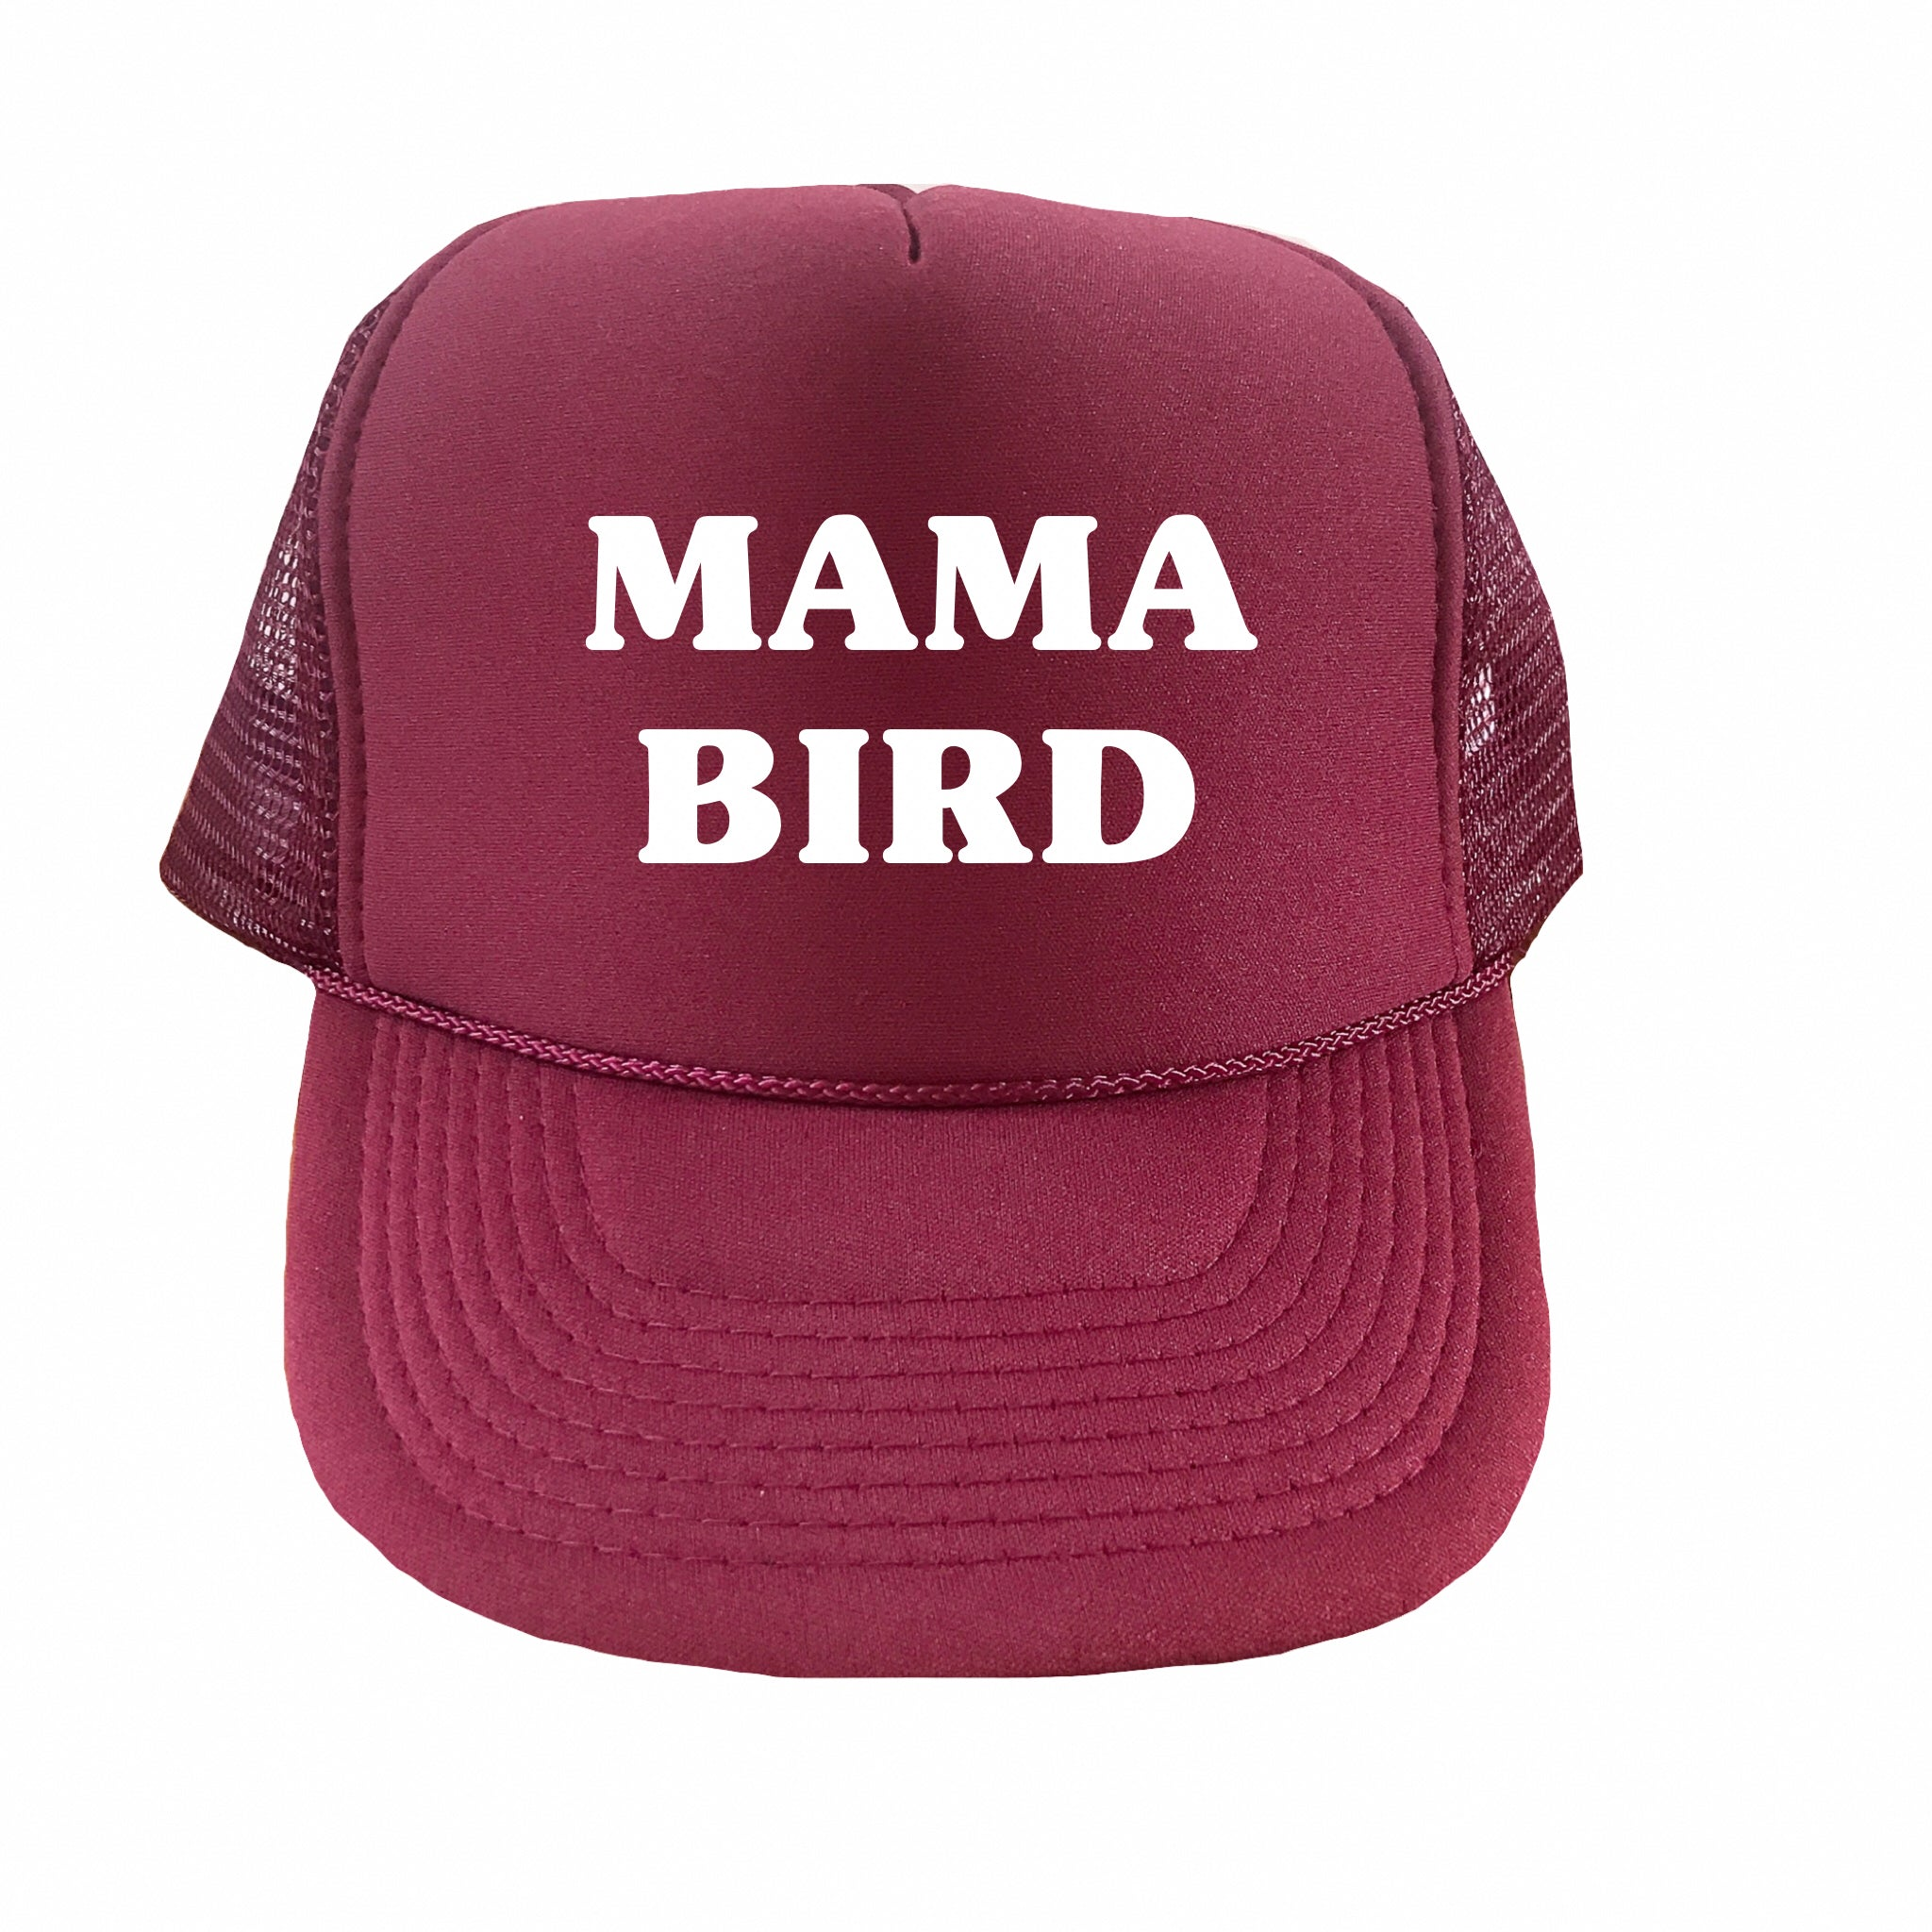 Mama Bird Trucker Hat (Burgundy)